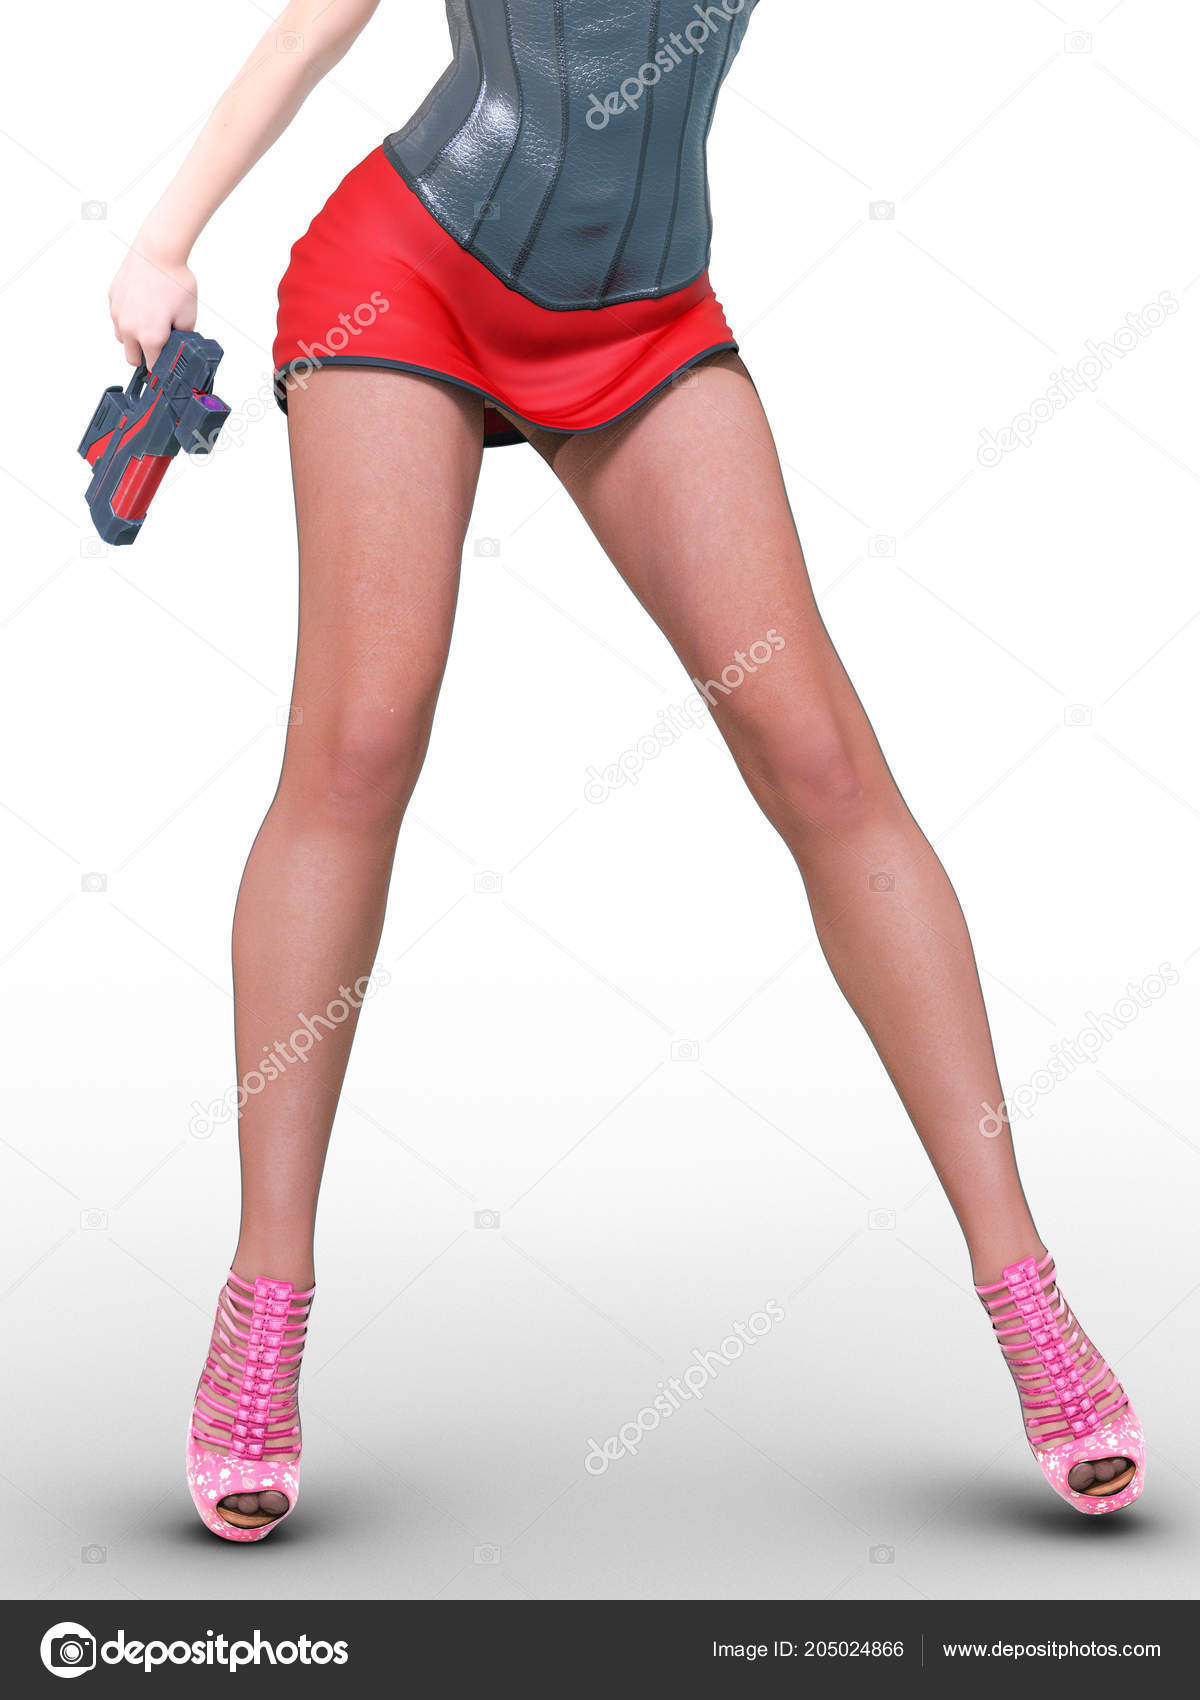 Really. female muscular legs in a skirt commit